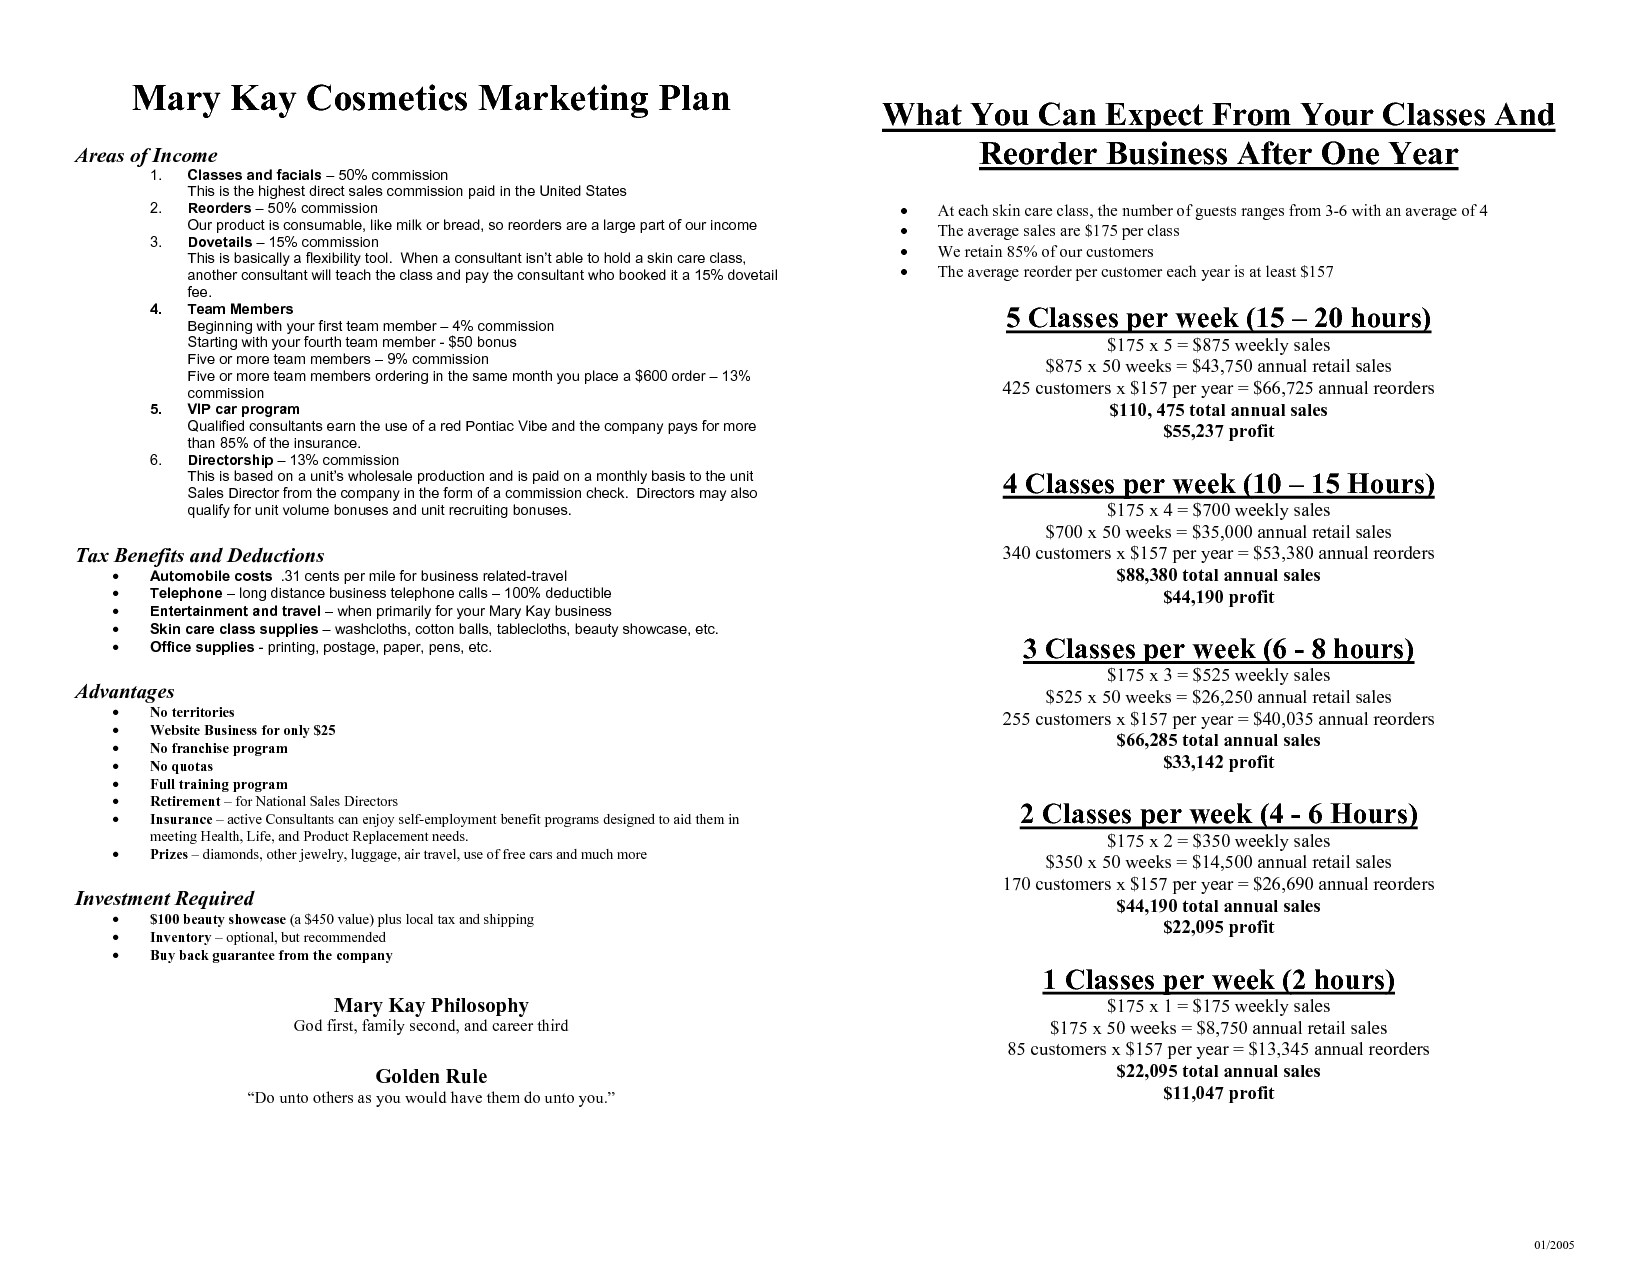 Mary Kay Business Plan  Mary Kay Cosmetics Marketing Plan What